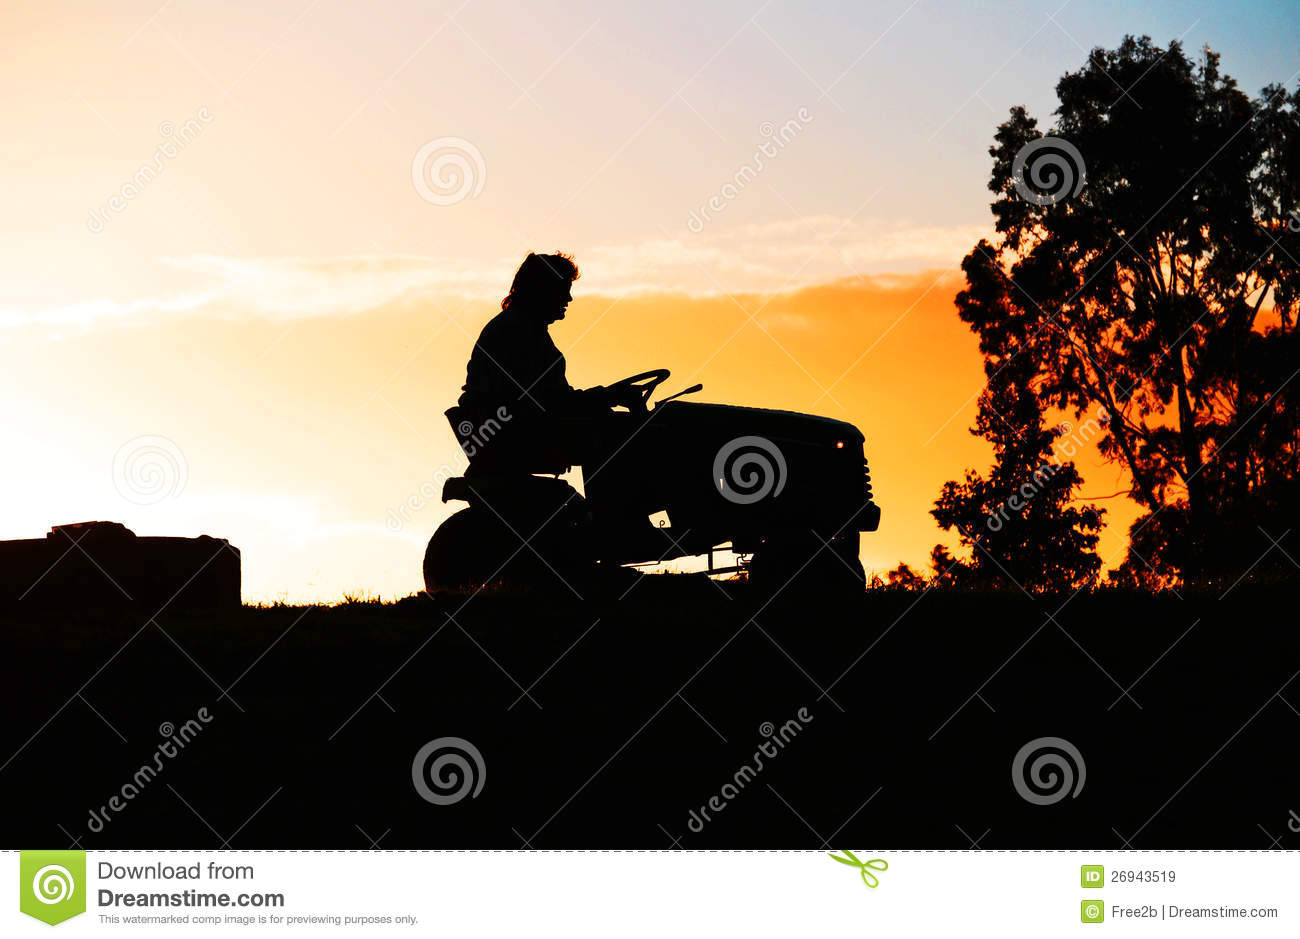 Person On A Ride On Lawn Mower On Farm At Sundown Stock